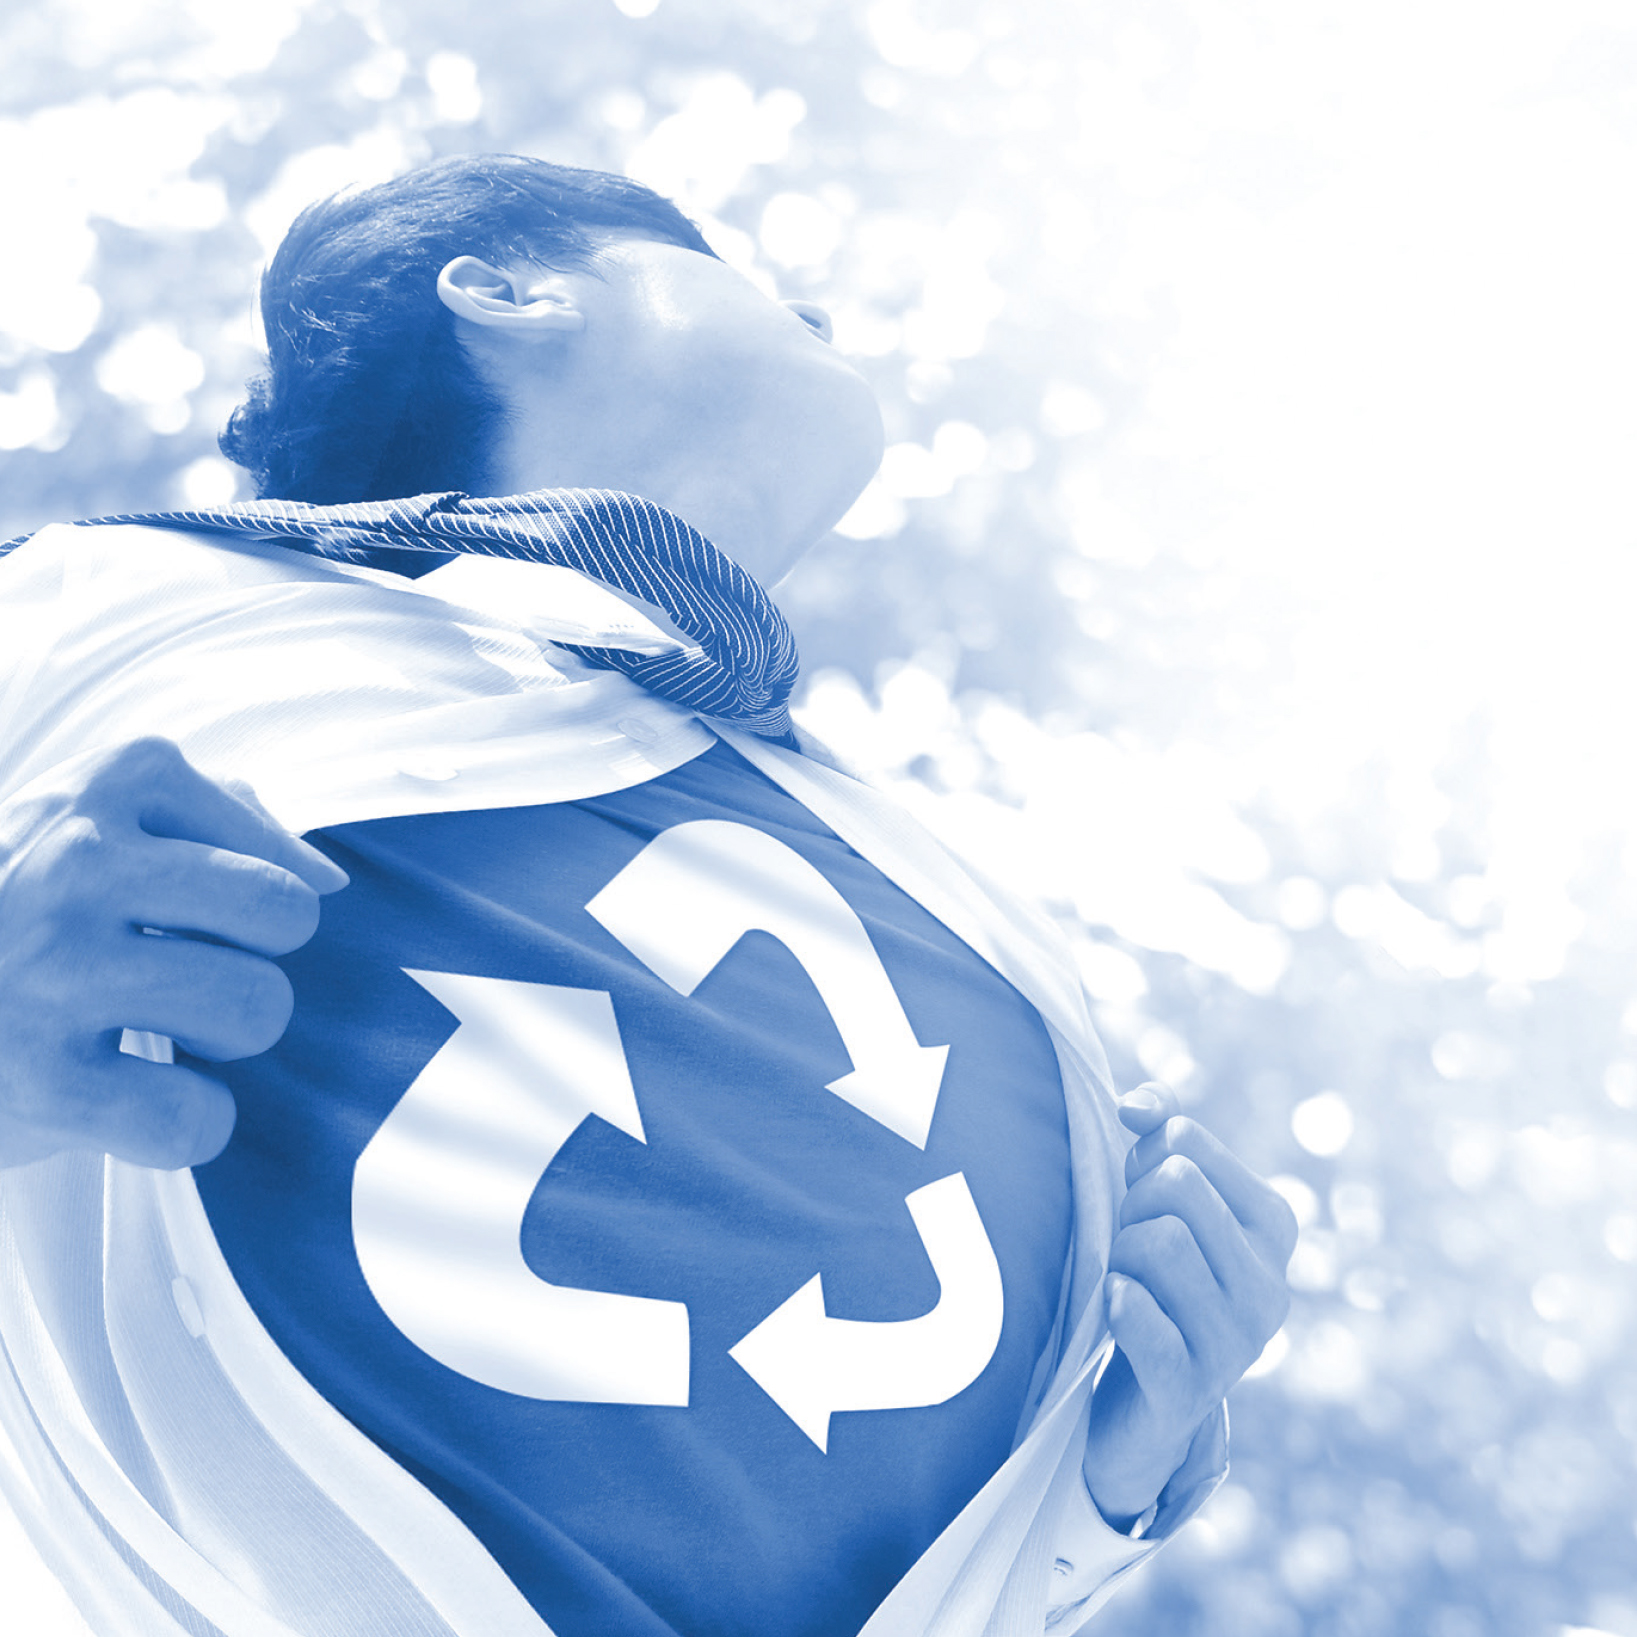 Man opening his shirt like superman but with a recycling symbol on his t-shirt. Image overlaid in blue.